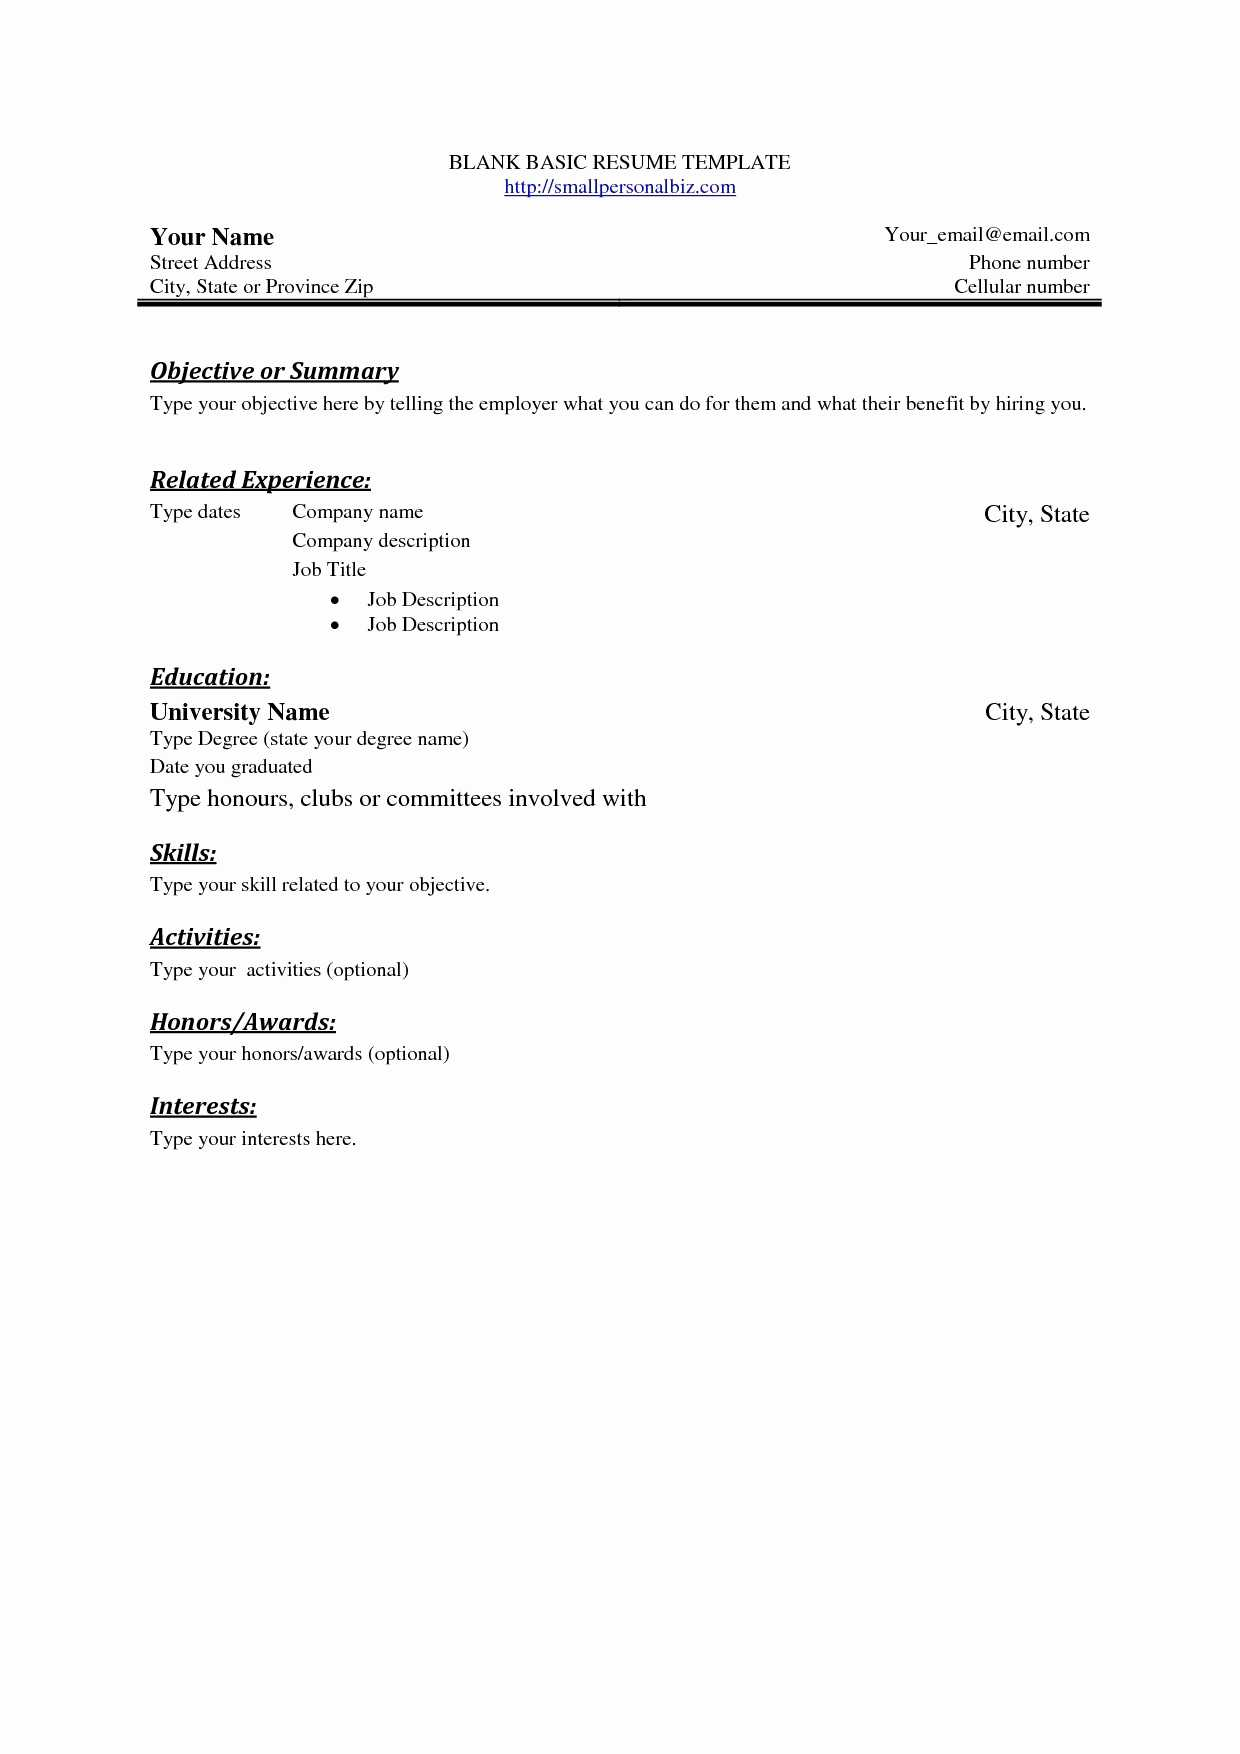 Easy Resume Template Free Cover Letter Templates Throughout Free Basic Resume Templates Microsoft Word